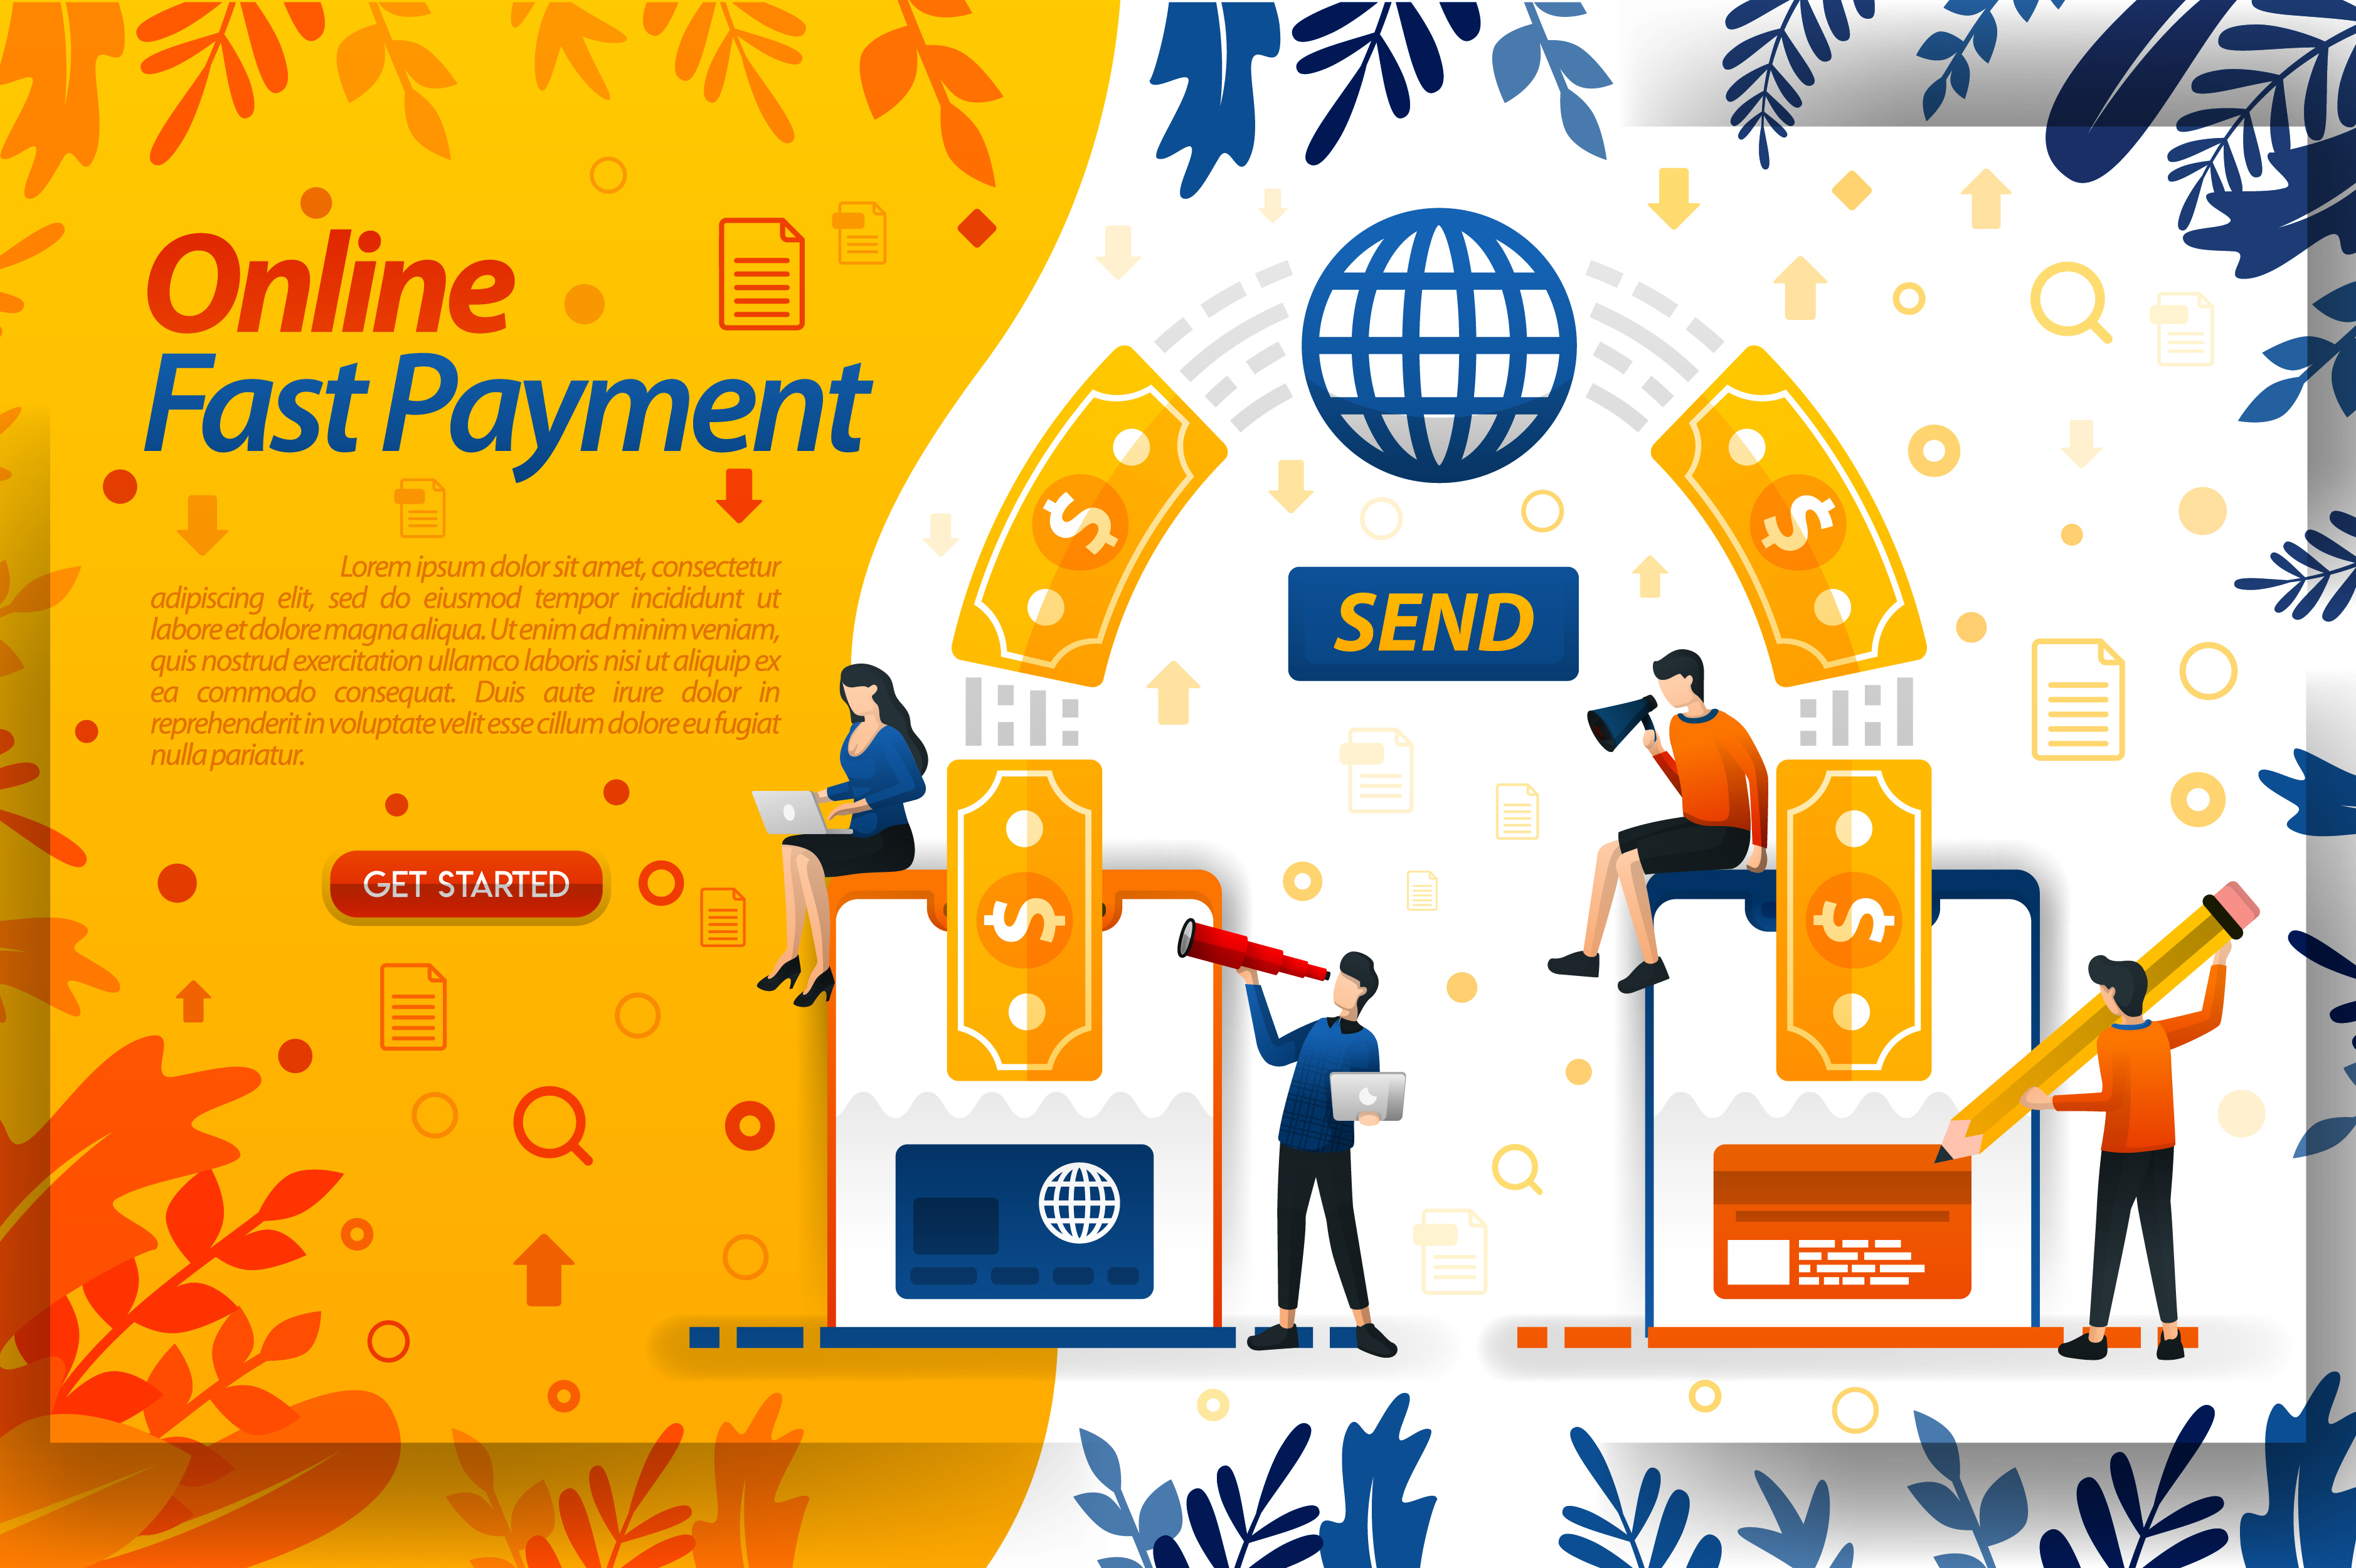 Download Free Fastest Money Payment And Transfer Graphic By Setiawanarief111 for Cricut Explore, Silhouette and other cutting machines.